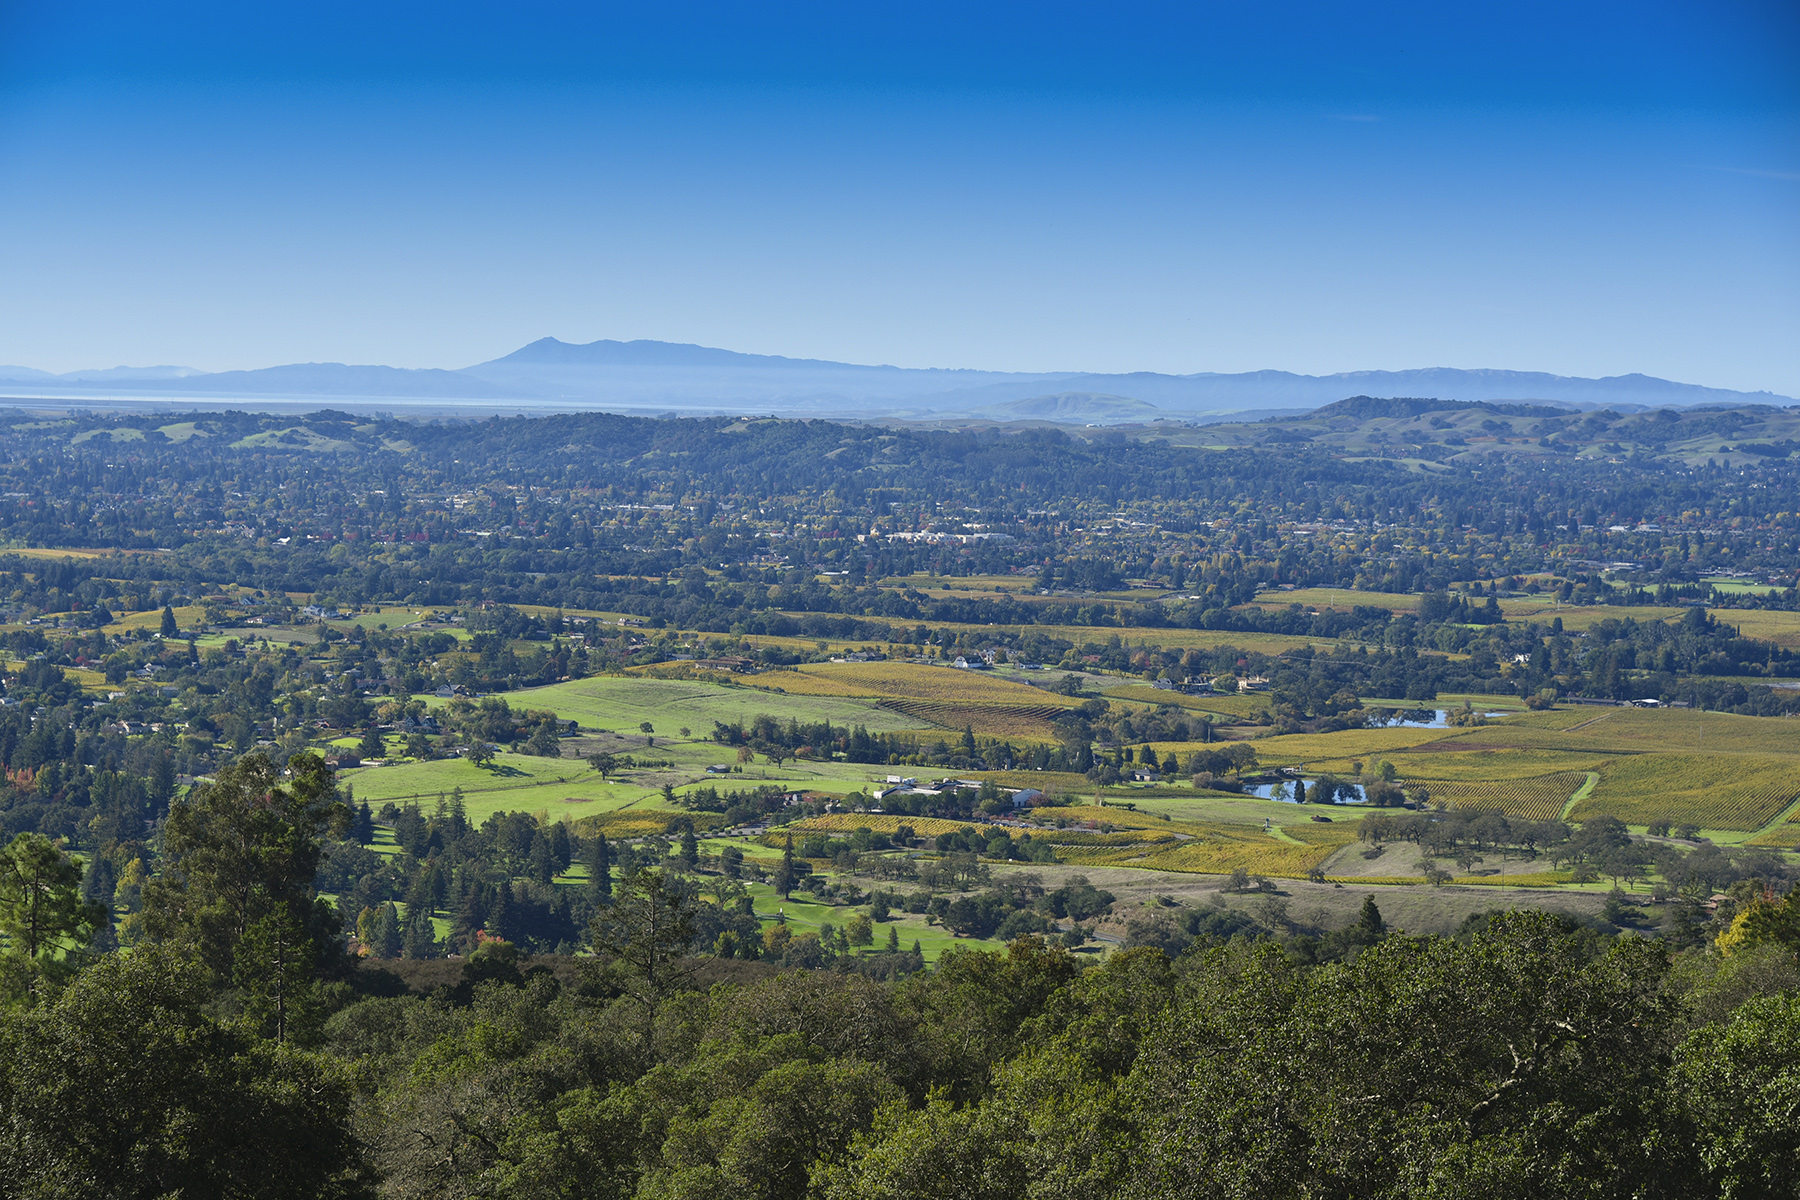 Land for Sale at 0 Atlas Peak Rd, Napa, CA 94558 0 Atlas Peak Rd Napa, California, 94558 United States